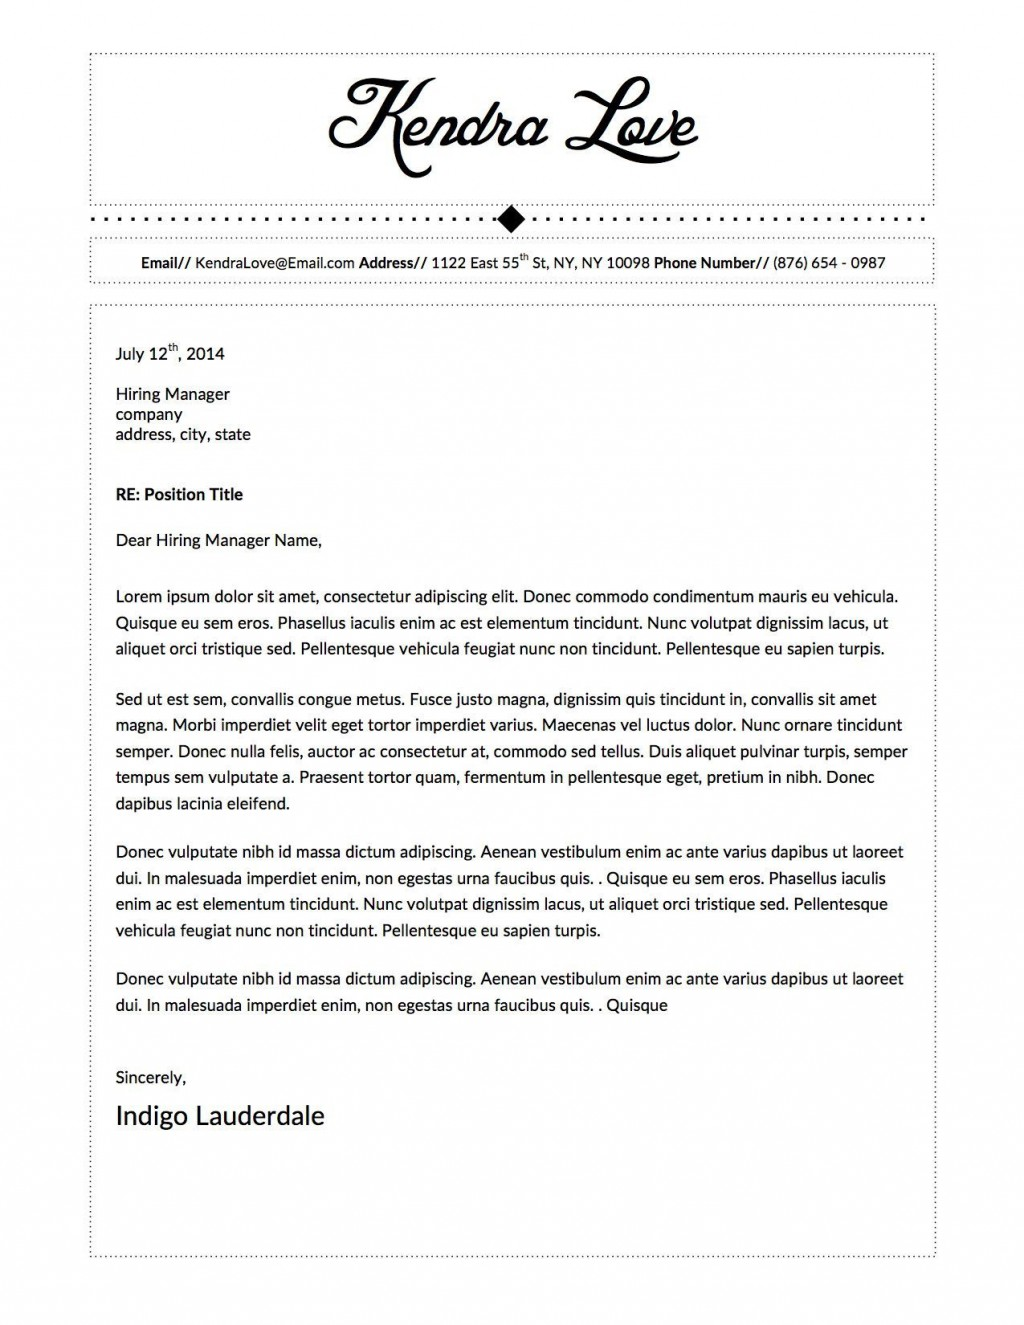 001 Fantastic Microsoft Word Letter Template Highest Quality  Free Download M Of ResignationLarge